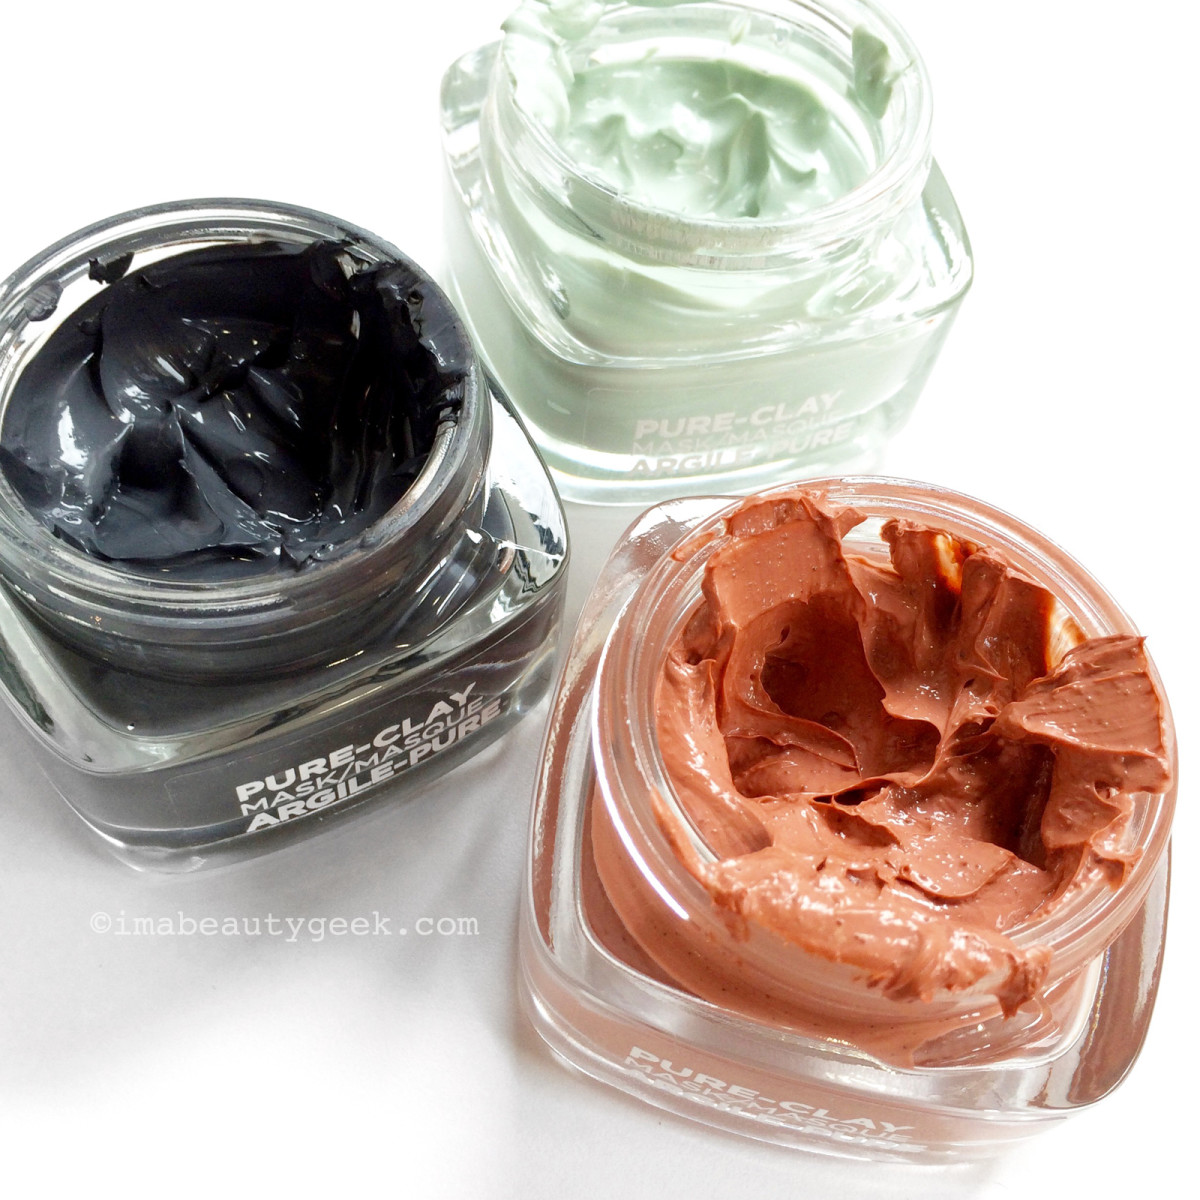 L'Oreal Paris Pure-Clay Masks Charcoal, Eucalyptus, Red Algae